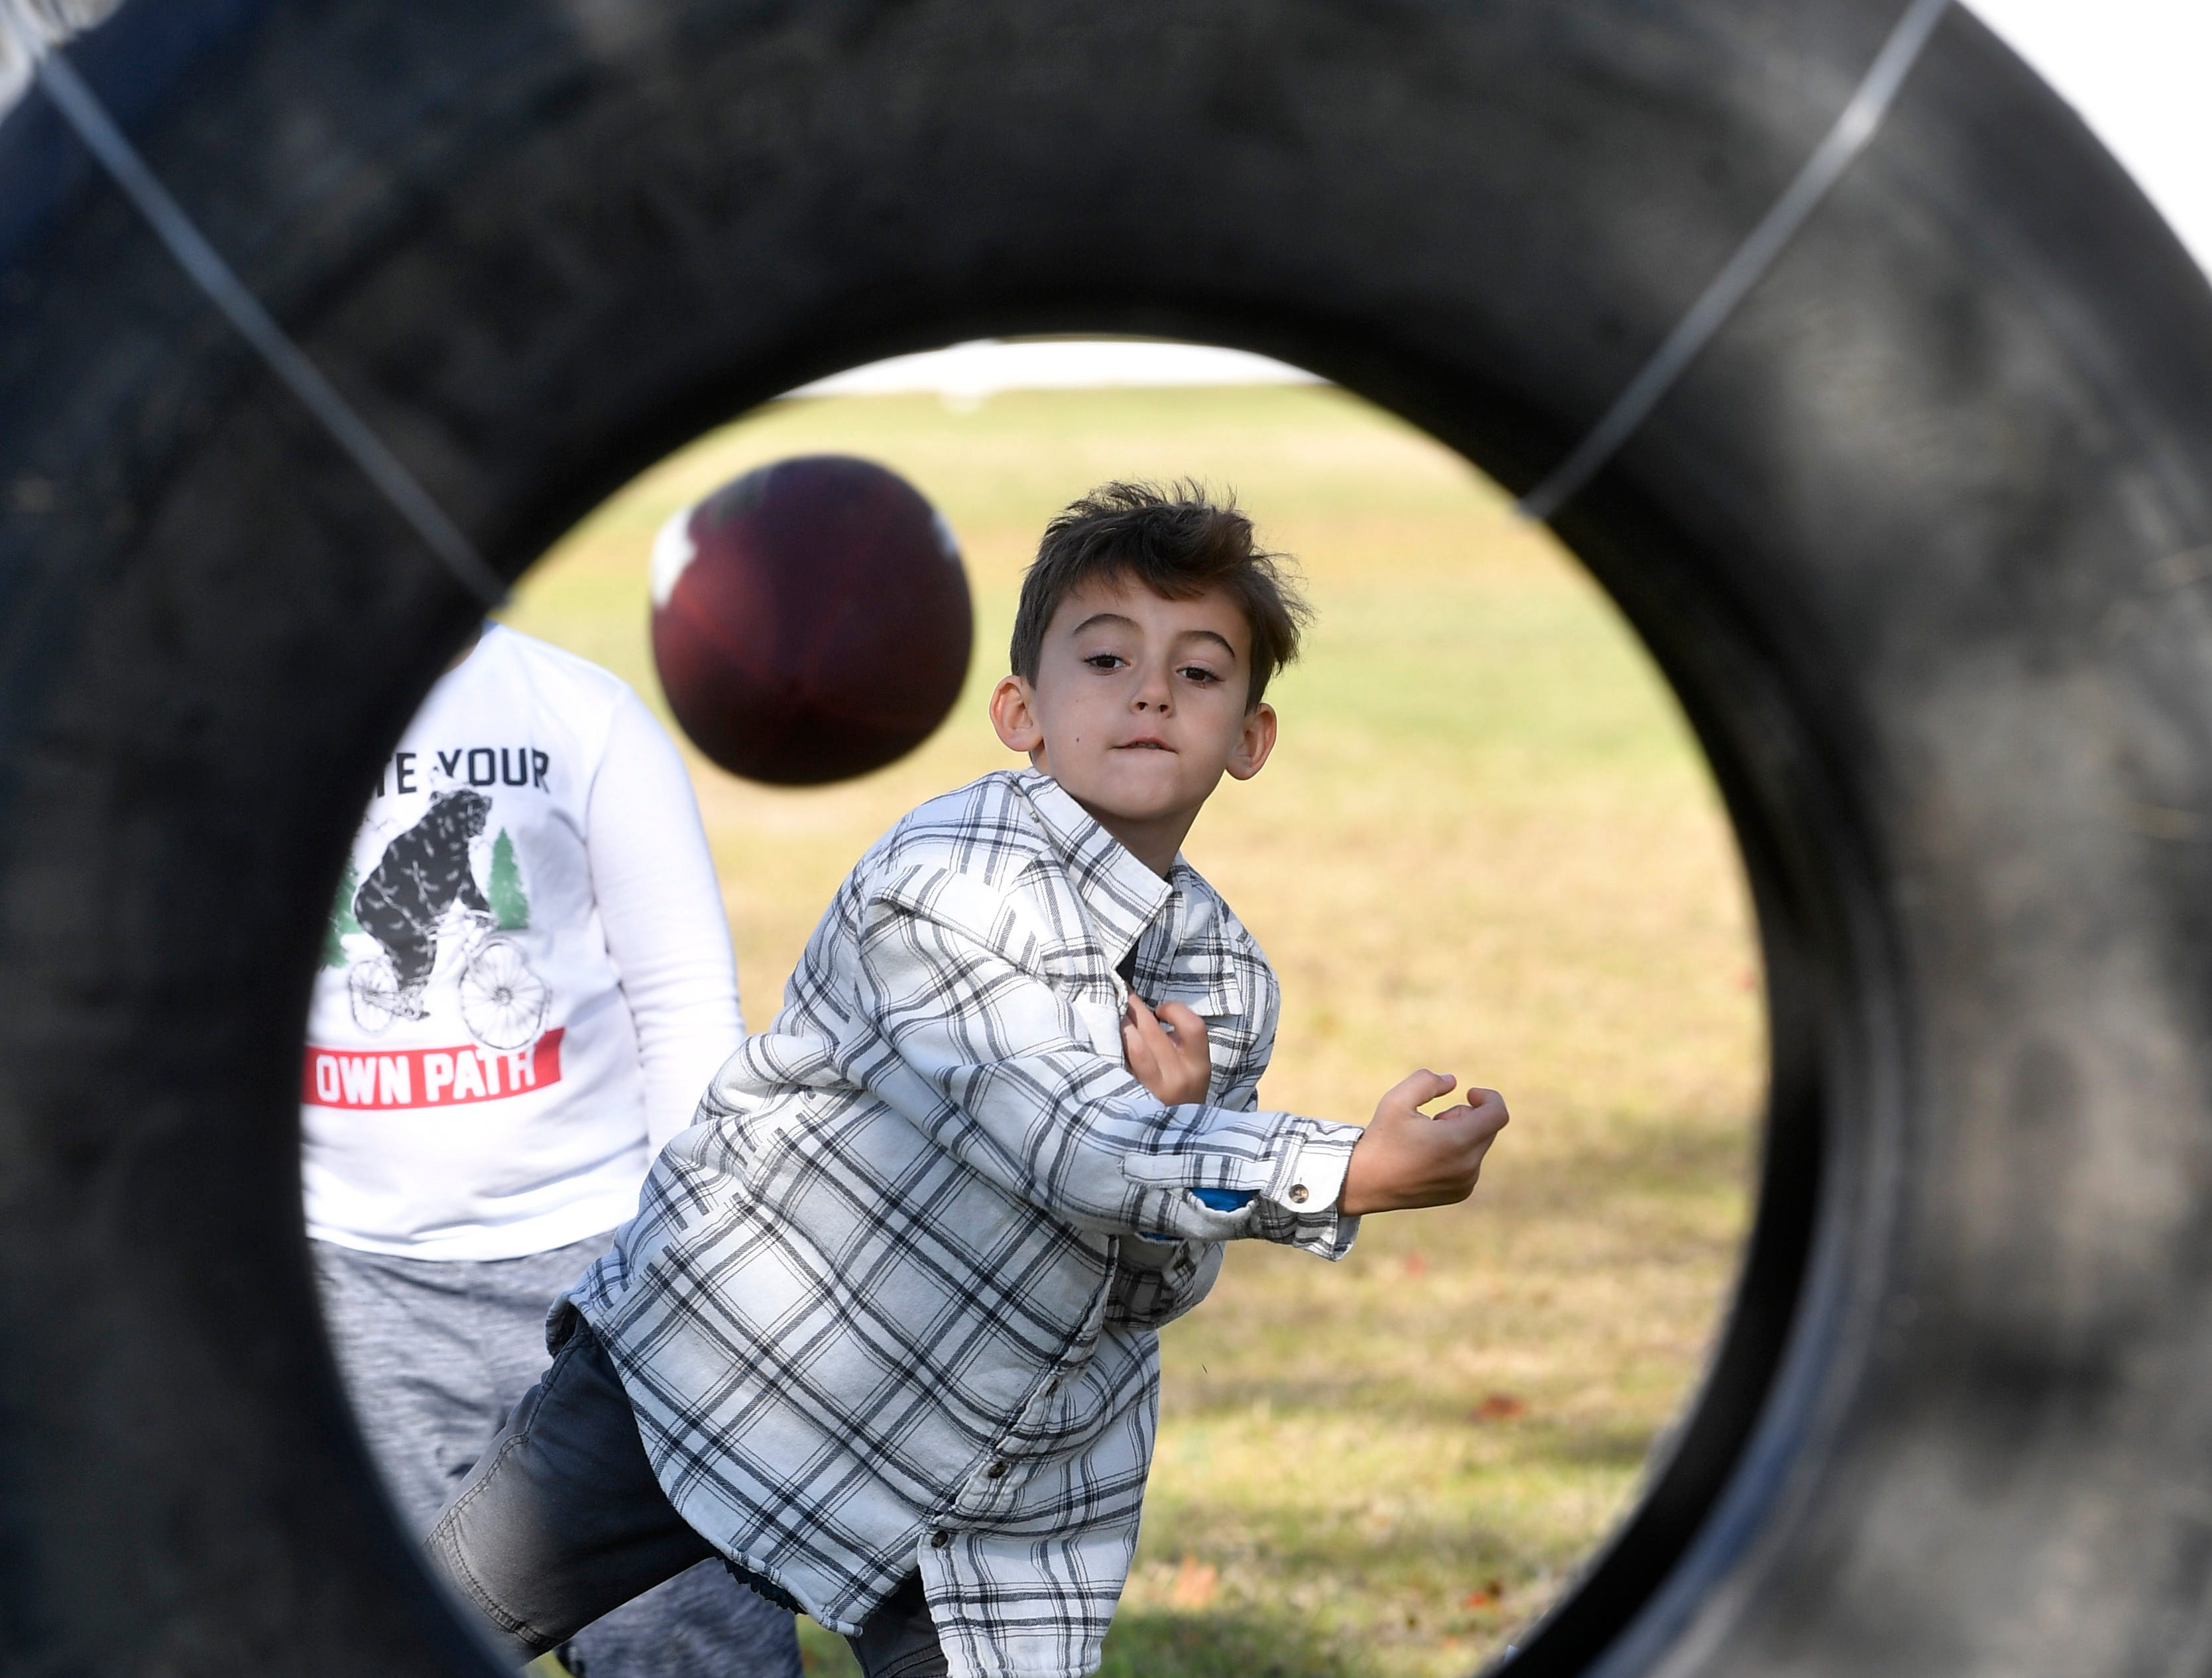 Lincoln Travis shows he know how to get the football through the tire during Family Day at the Park at Harlinsdale Farms Saturday Nov. 3, 2018, in Franklin, Tenn.